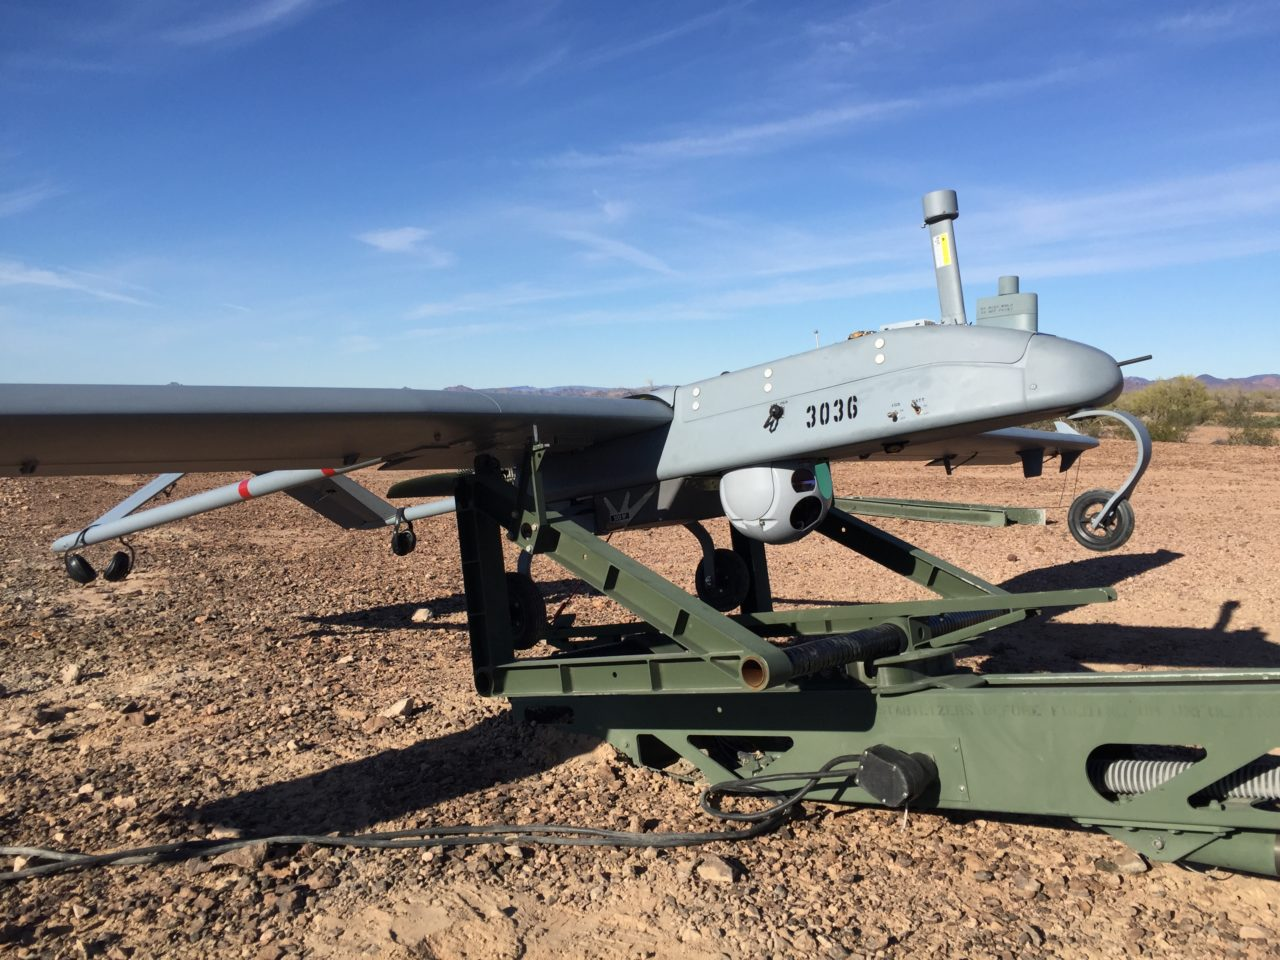 Textron's RQ-7B Shadow tactical unmanned aircraft system. (Textron)